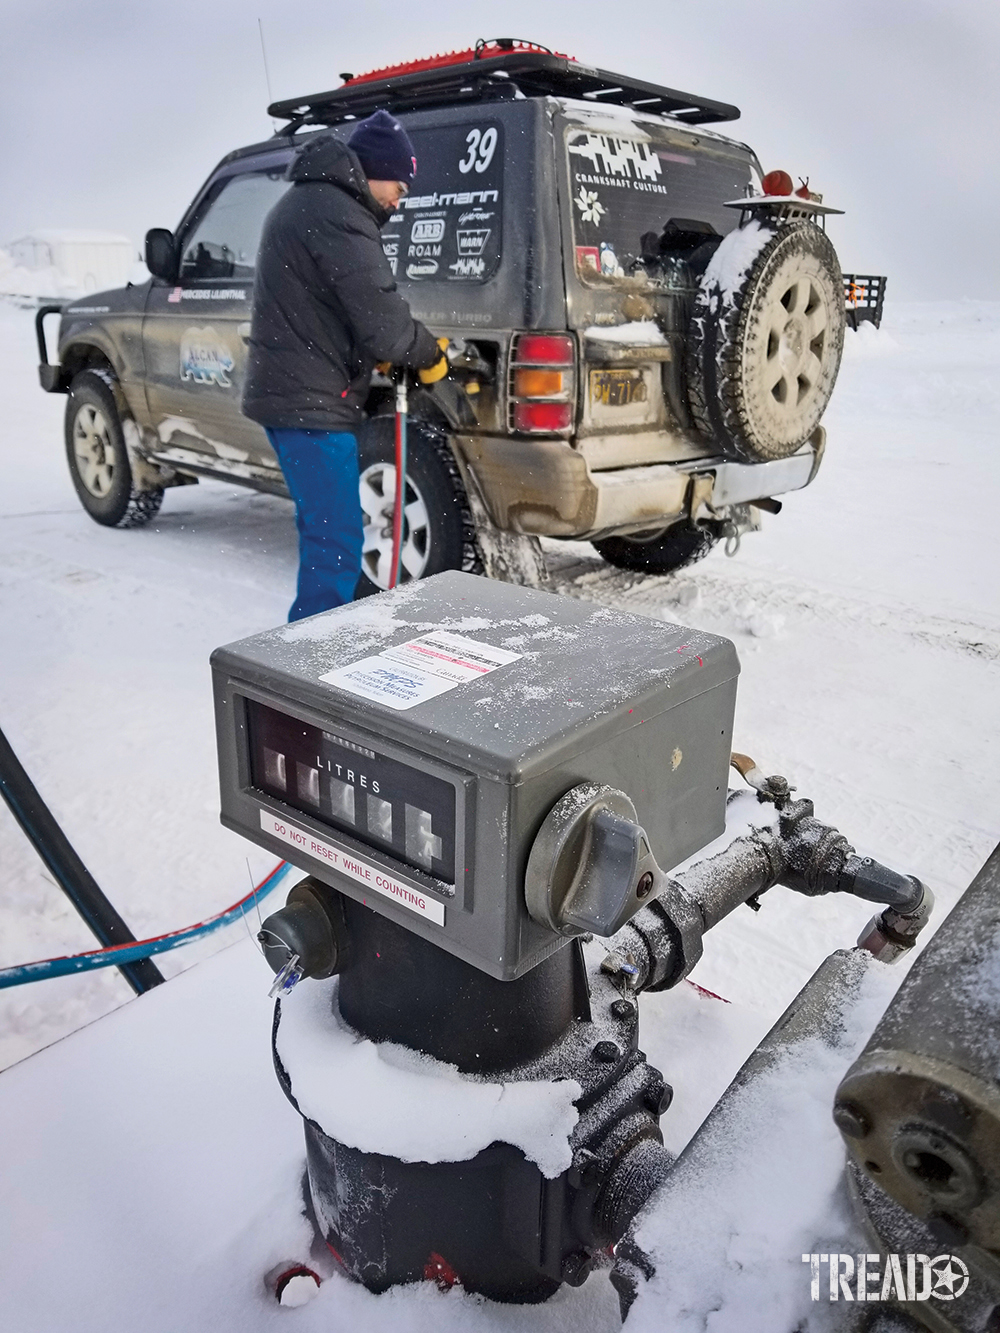 Andy Lilienthal, earing blue snow pants and black jacket fills up the dark gray Mitsubishi Pajero fuel tank and aux tank during the 2020 Alcan Rally.